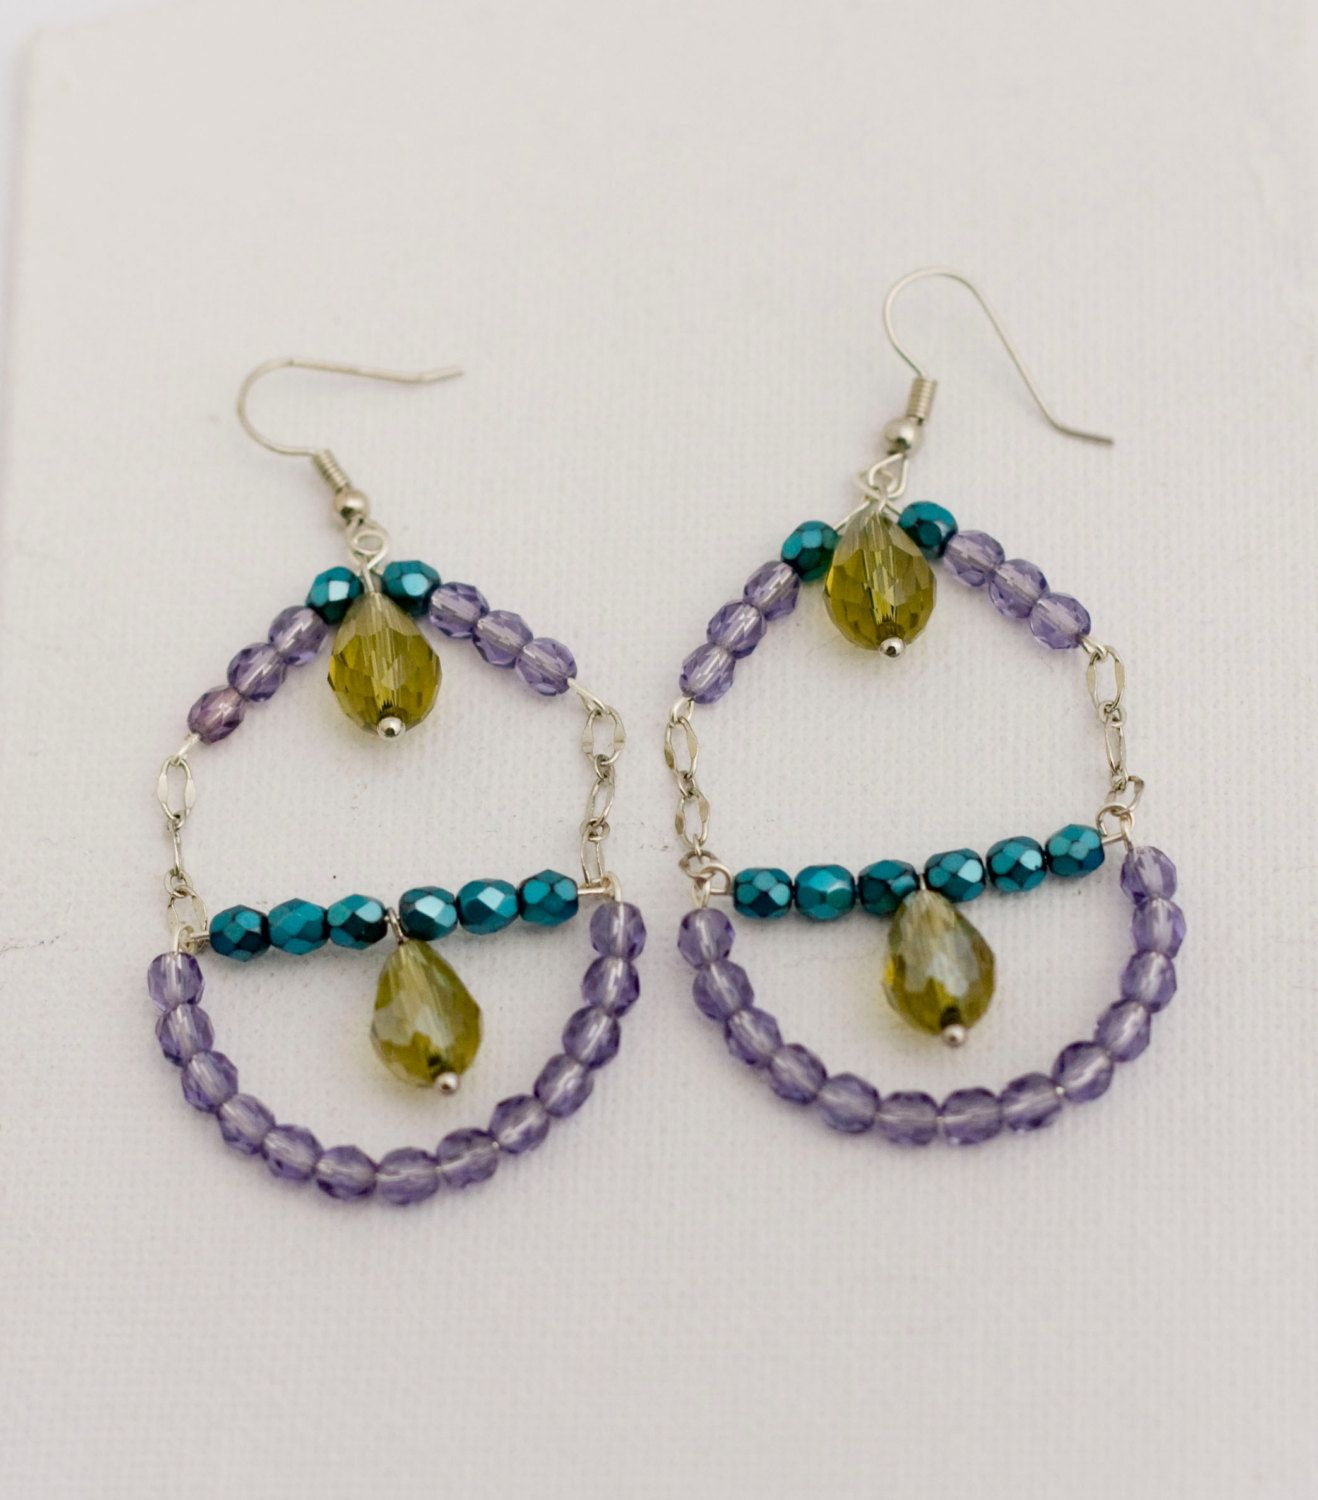 statement chandelier earrings, long dangle earrings, with purple and teal half crystals and citrine svarowski drops by MICETTESGARDEN on Etsy